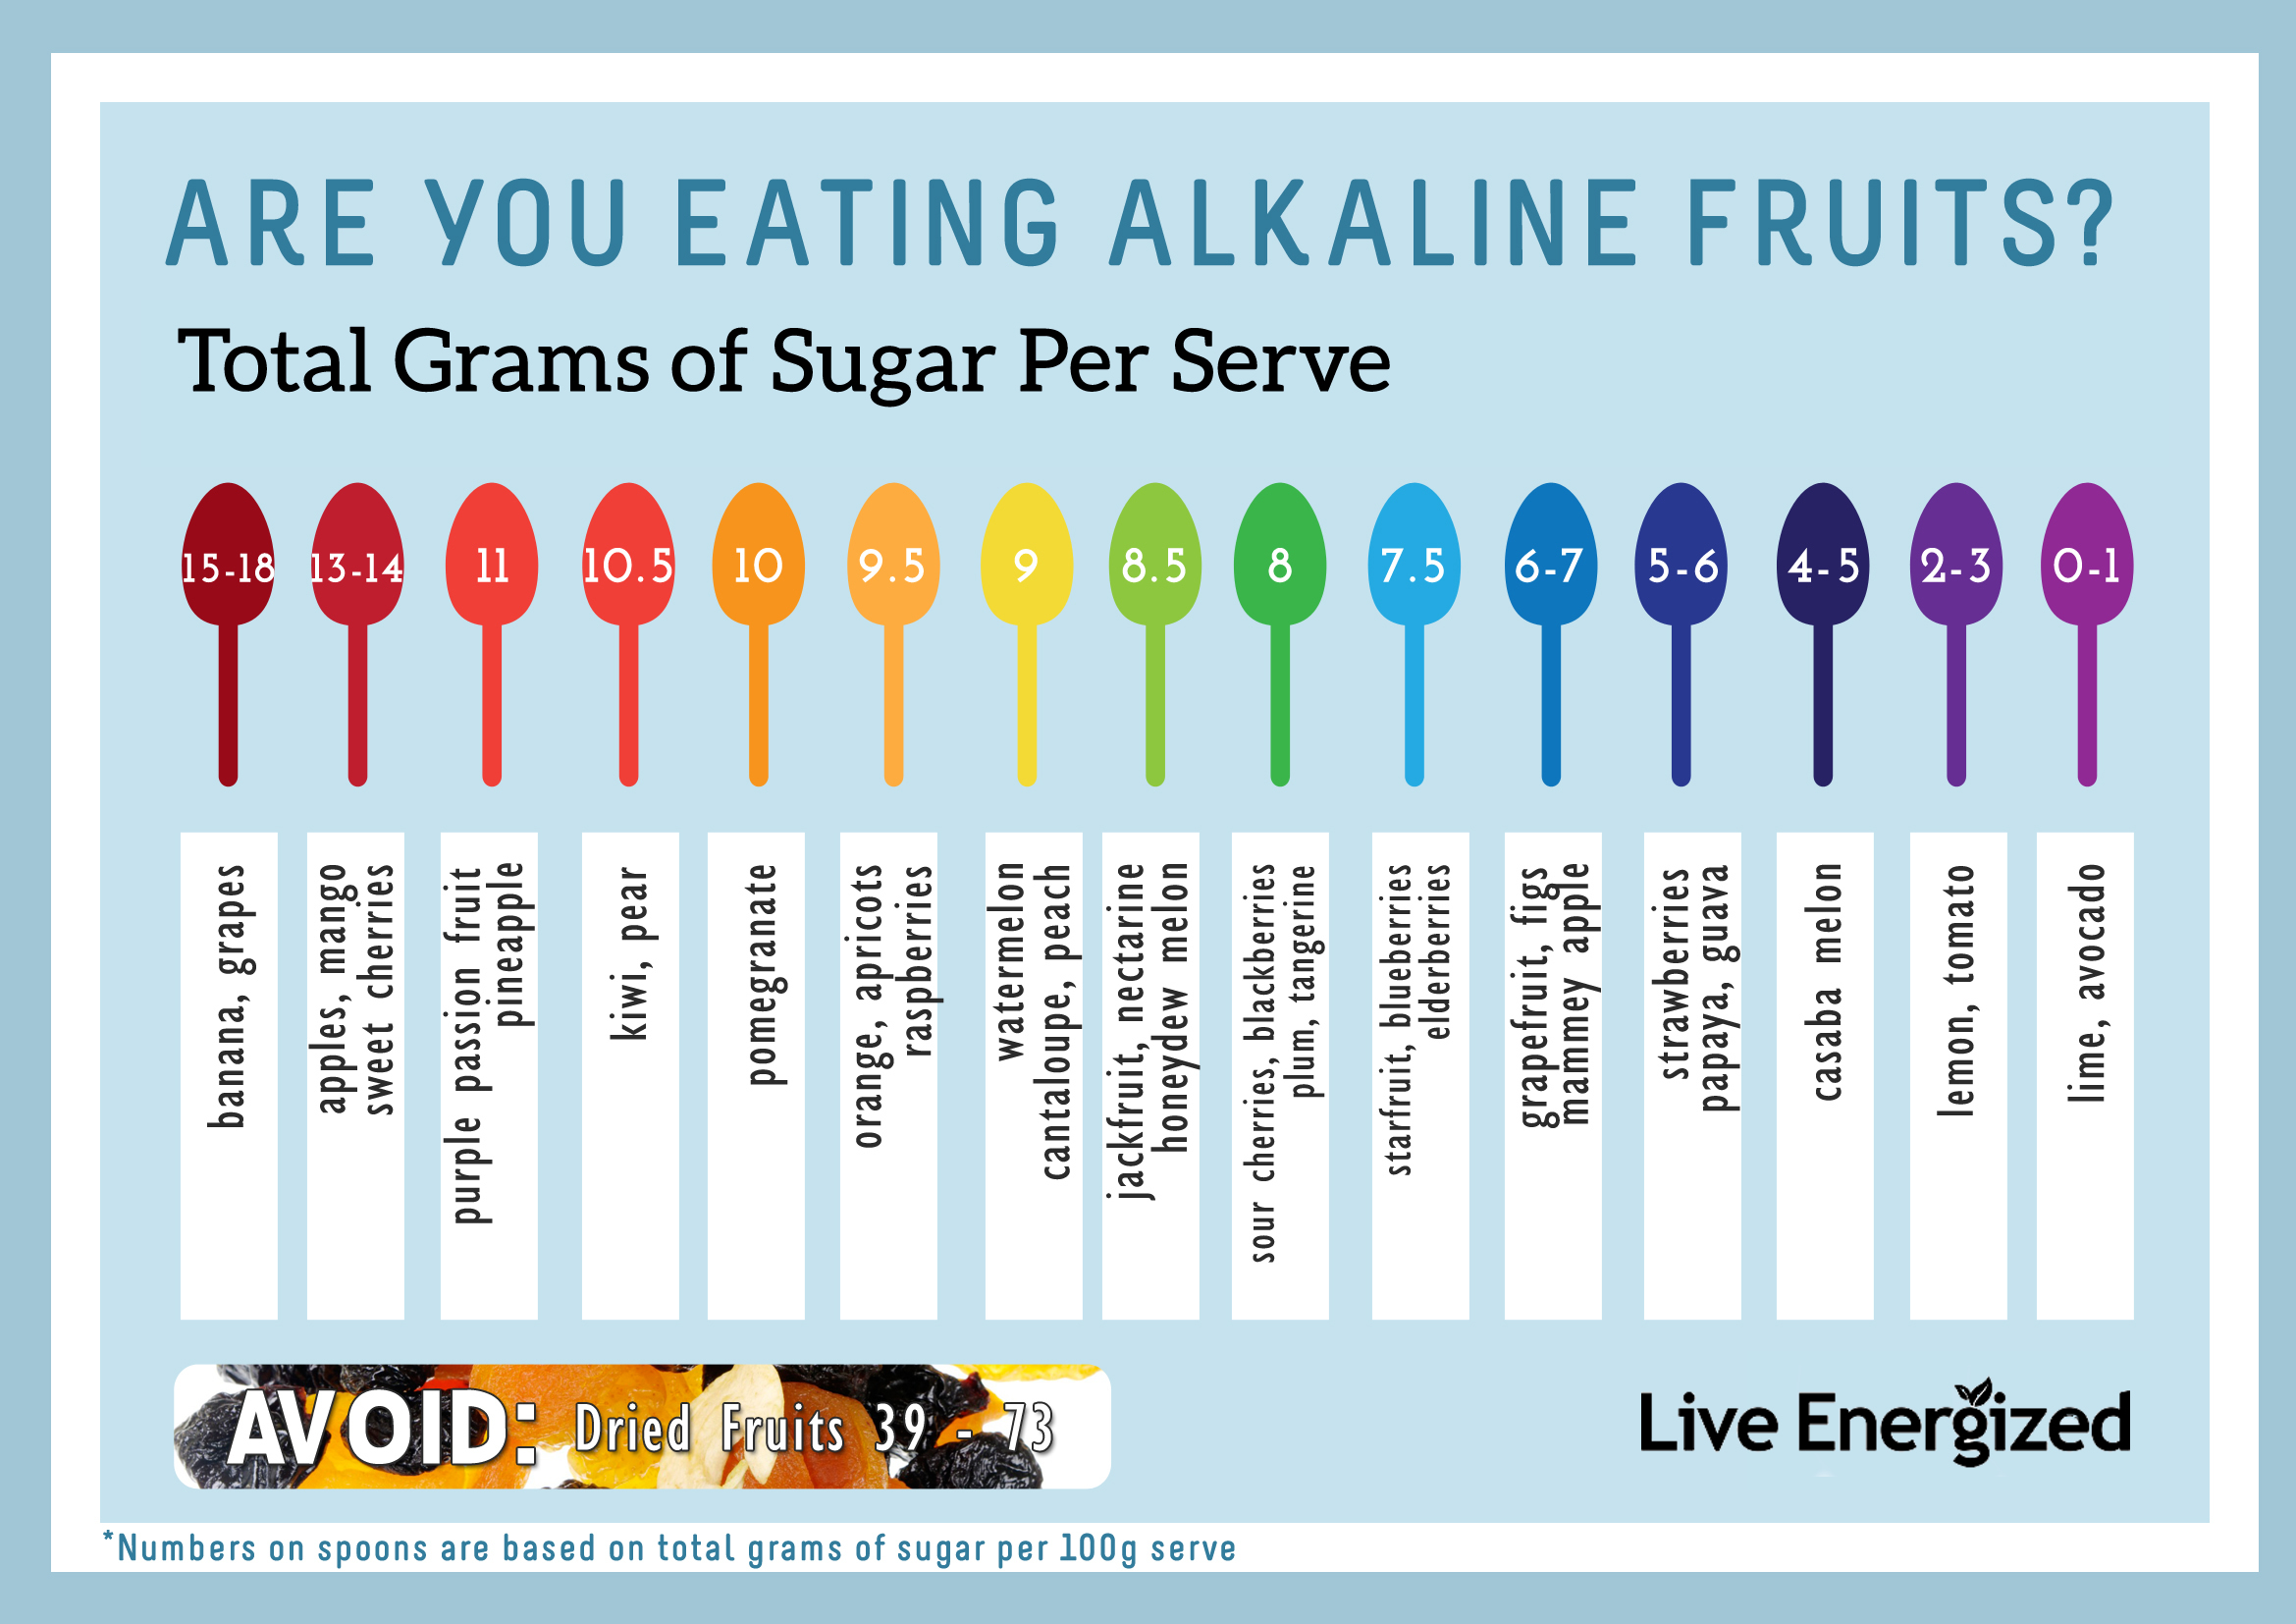 These Are Not Alkaline Fruits They Most Definitely Acidic And We Need To Make Sure Don T Eat Juice Smoothie A Ton Of Them Every Day